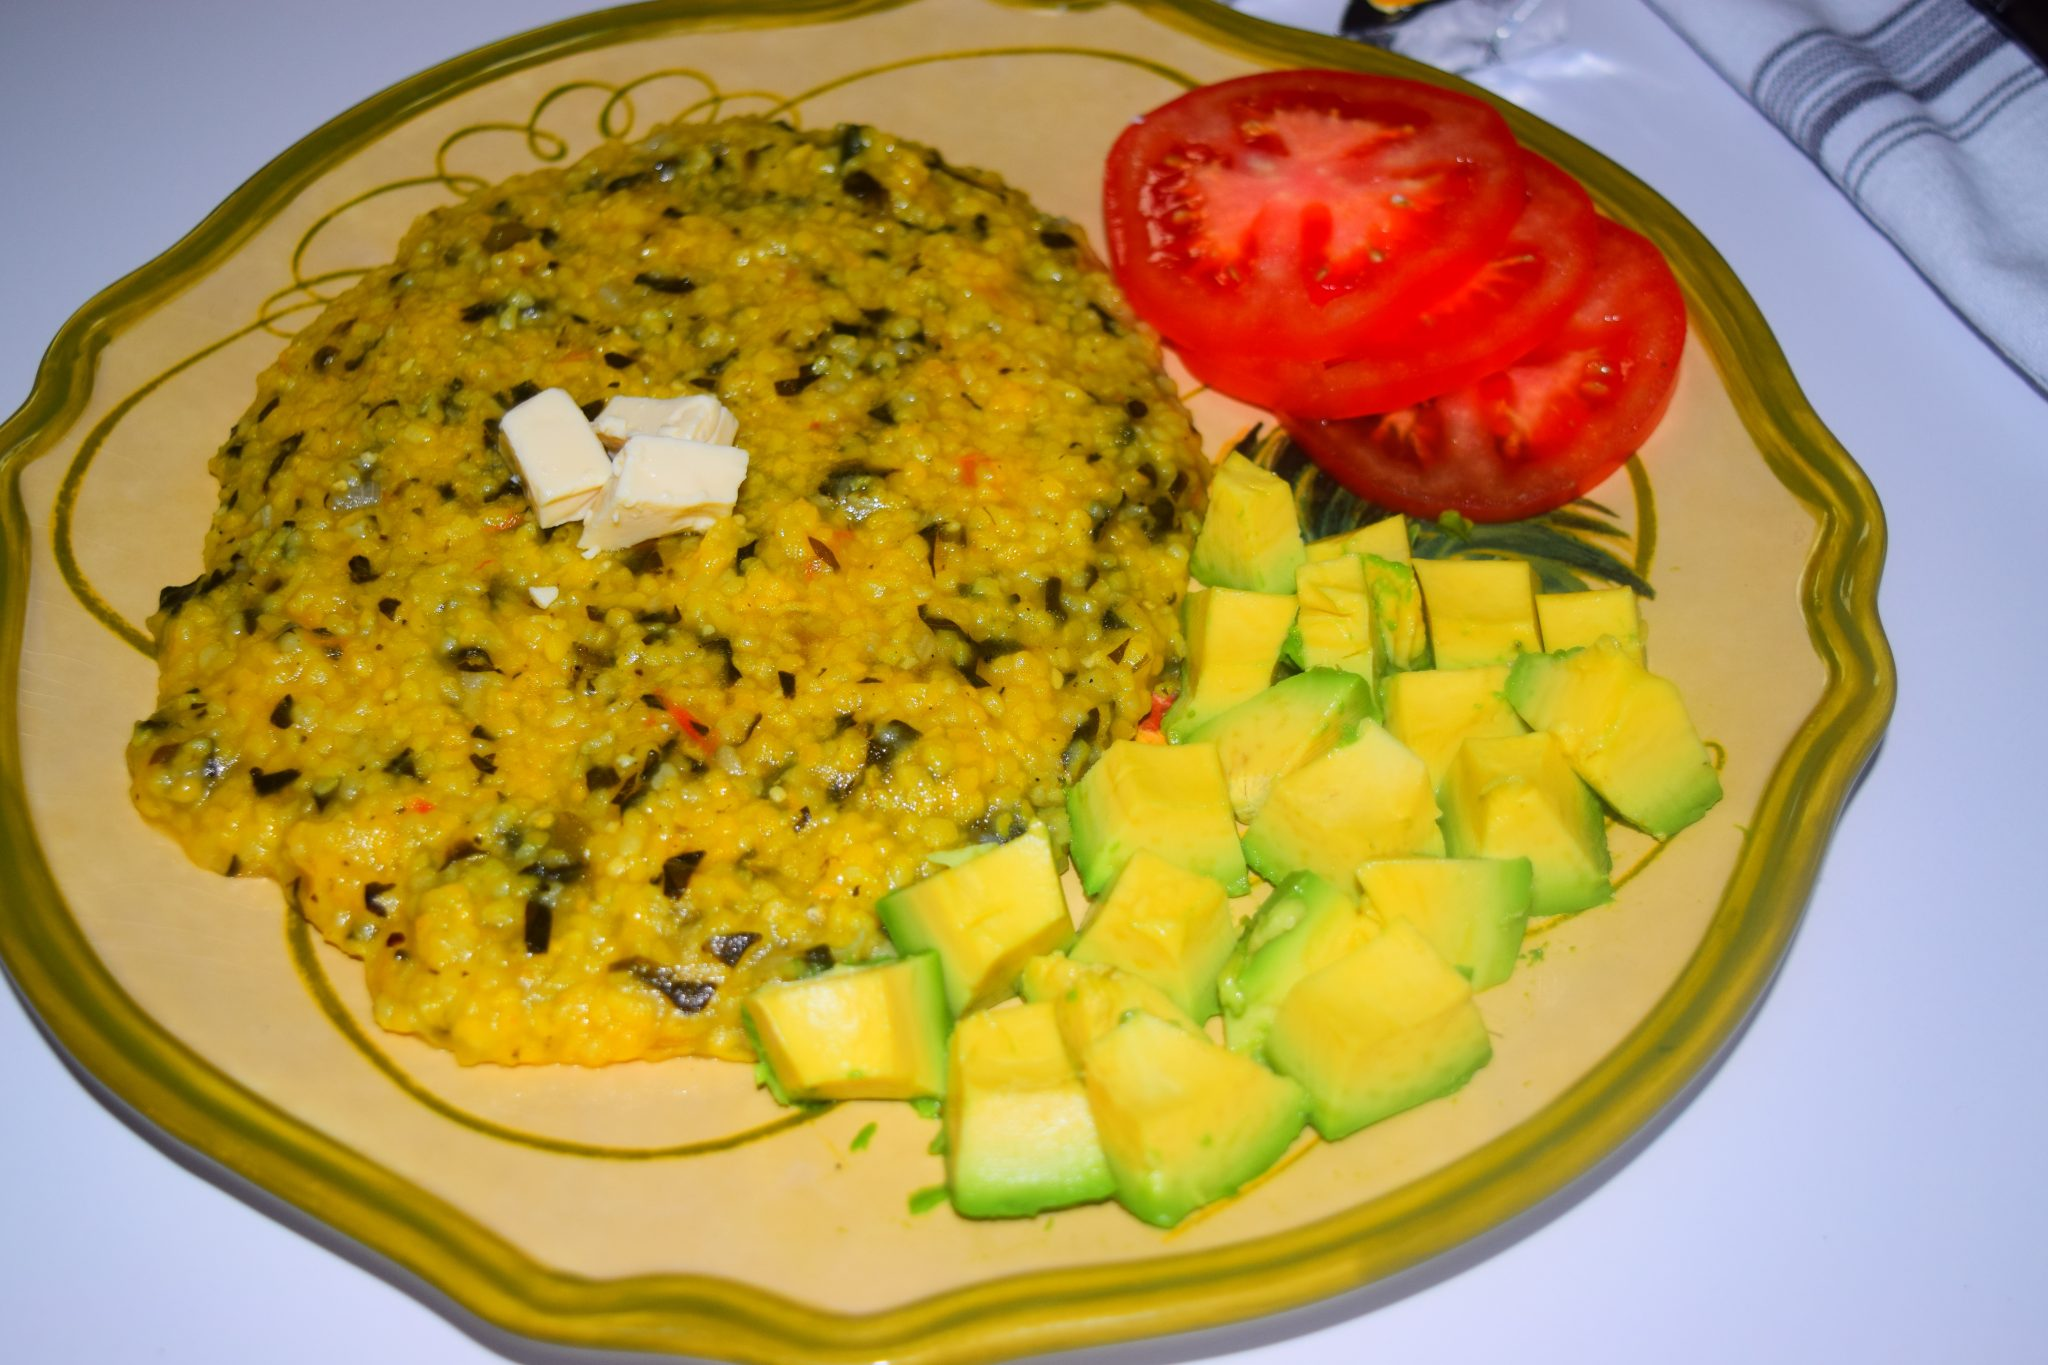 Plate of Cornmeal and Spinach